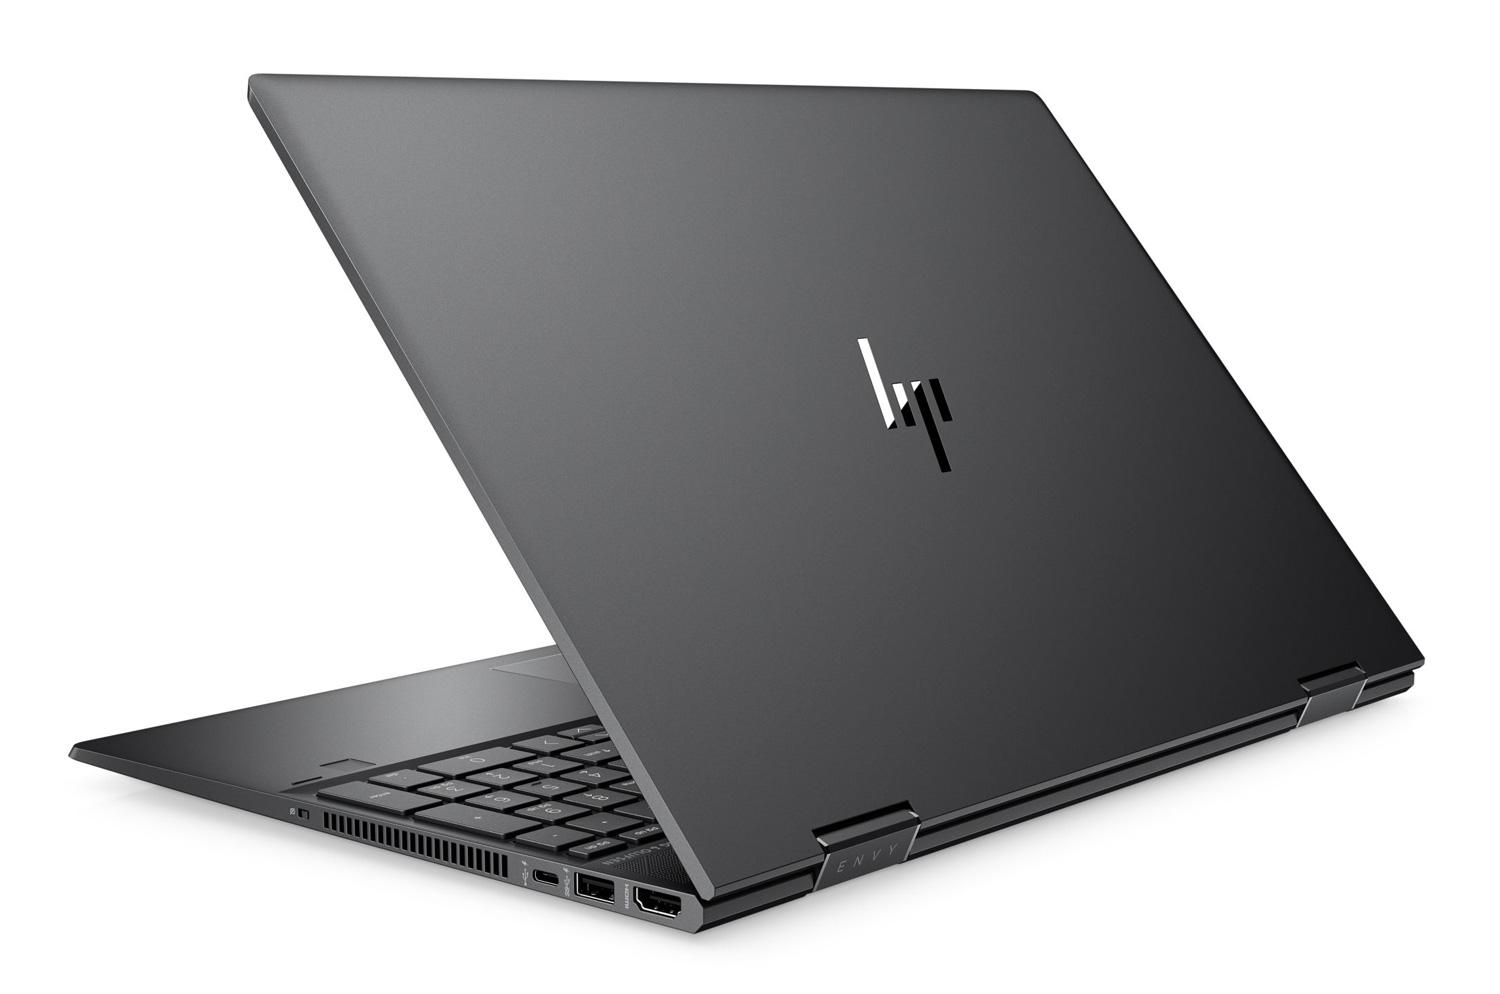 Ordinateur portable HP Envy x360 15-ds0004nf Noir cendre tactile - AMD Ryzen 5 - photo 6